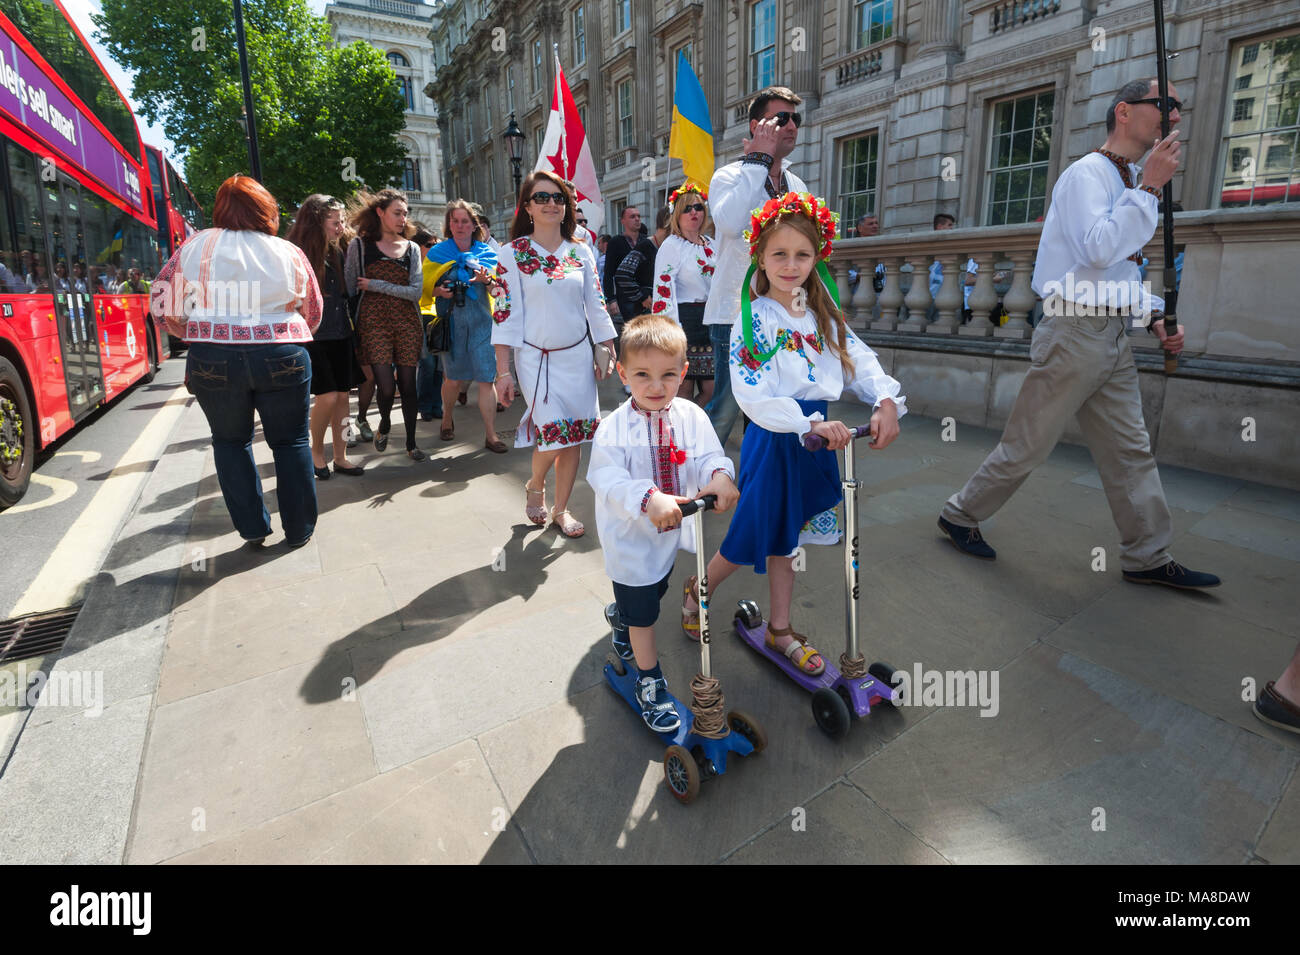 Children on scooters on the Vyshyvanka Embroidery march in